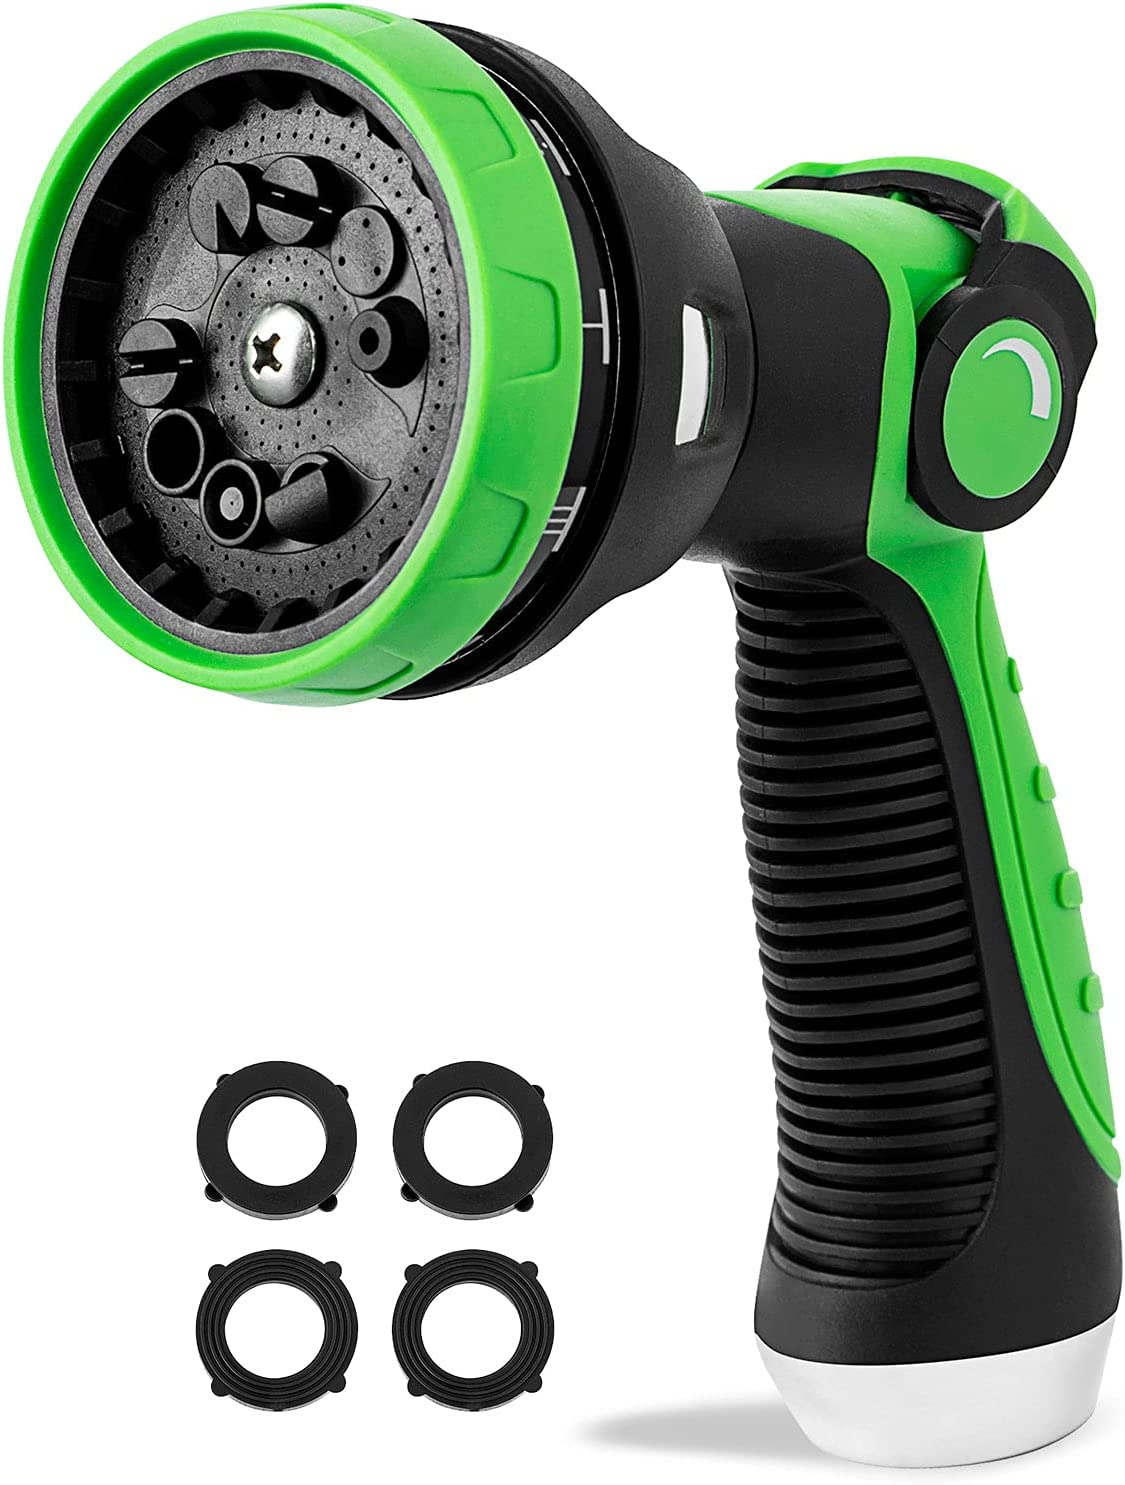 Garden Hose Nozzle Sprayer Thumb Control High Pressure Pistol Grip Easy Water Control- Hose Spray Nozzle Best for Watering Plants Cleaning & Car Wash/Features 10 Spray Nozzle